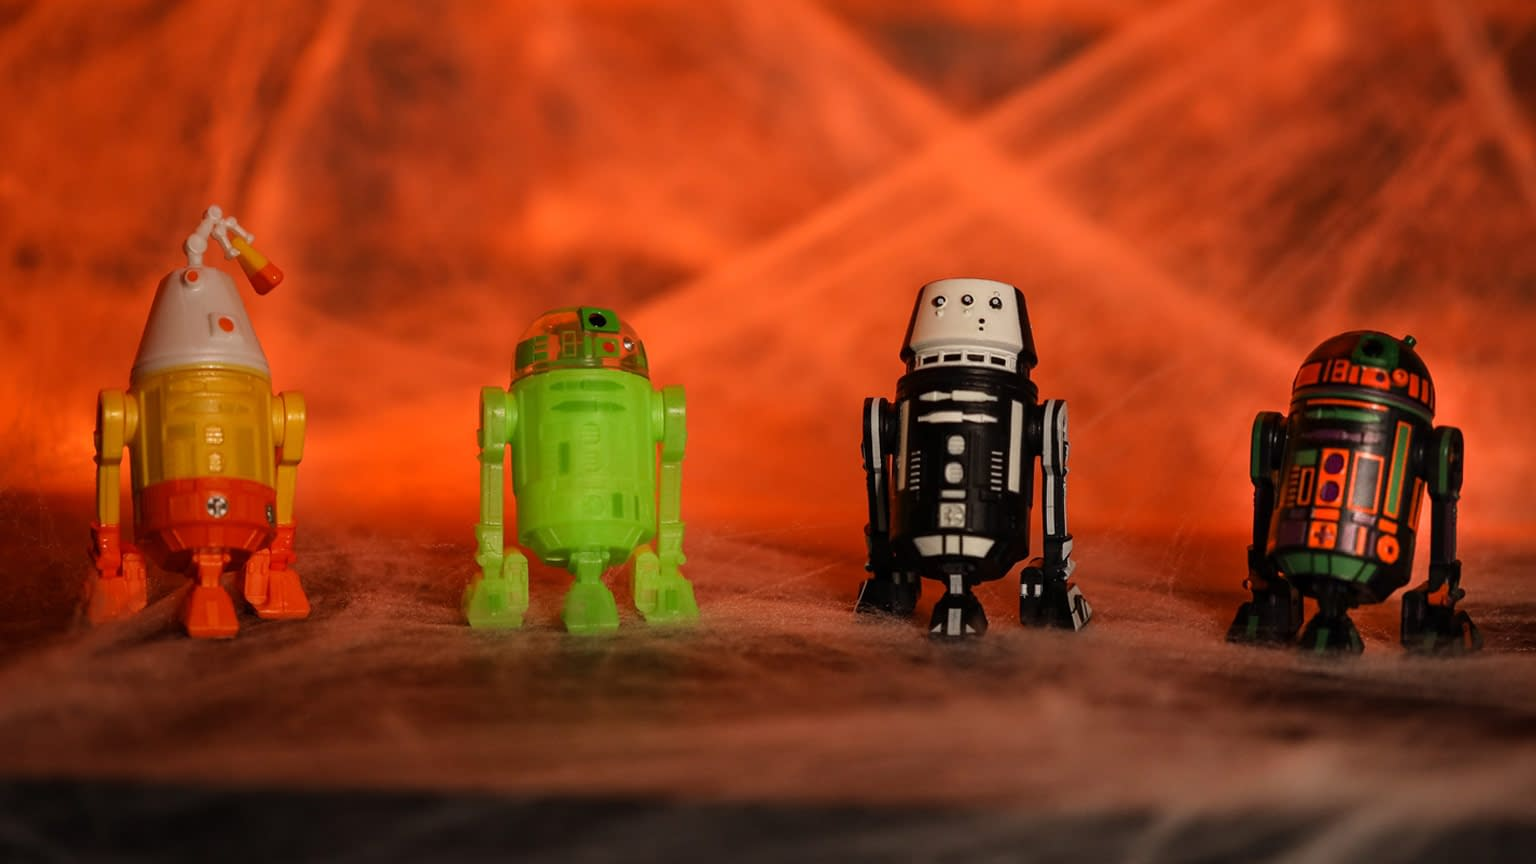 Star Wars Droids Get Spooky in New Disney Park Exclusives